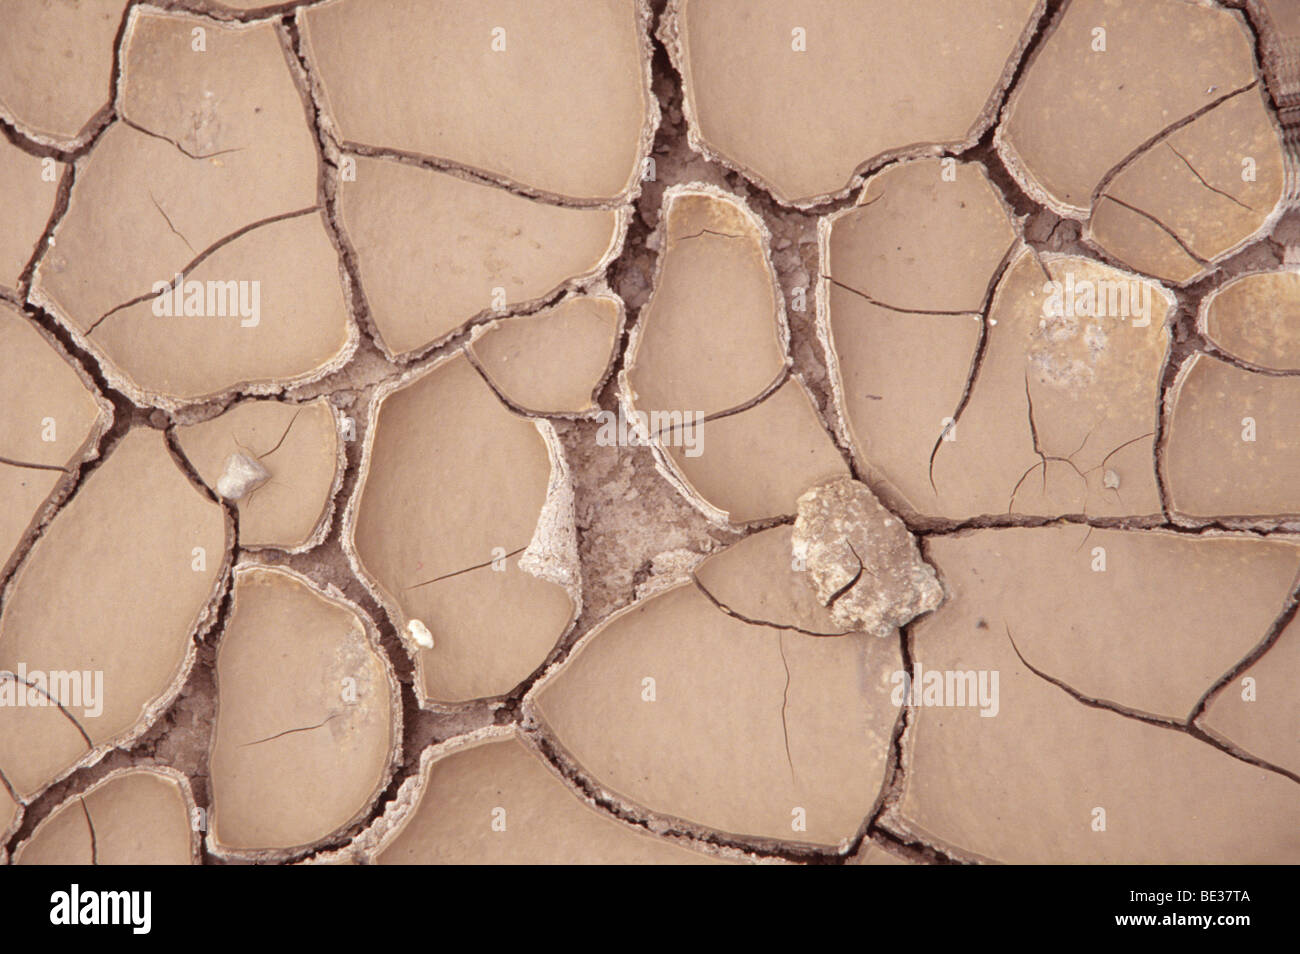 River bed after a long drought, detail - Stock Image